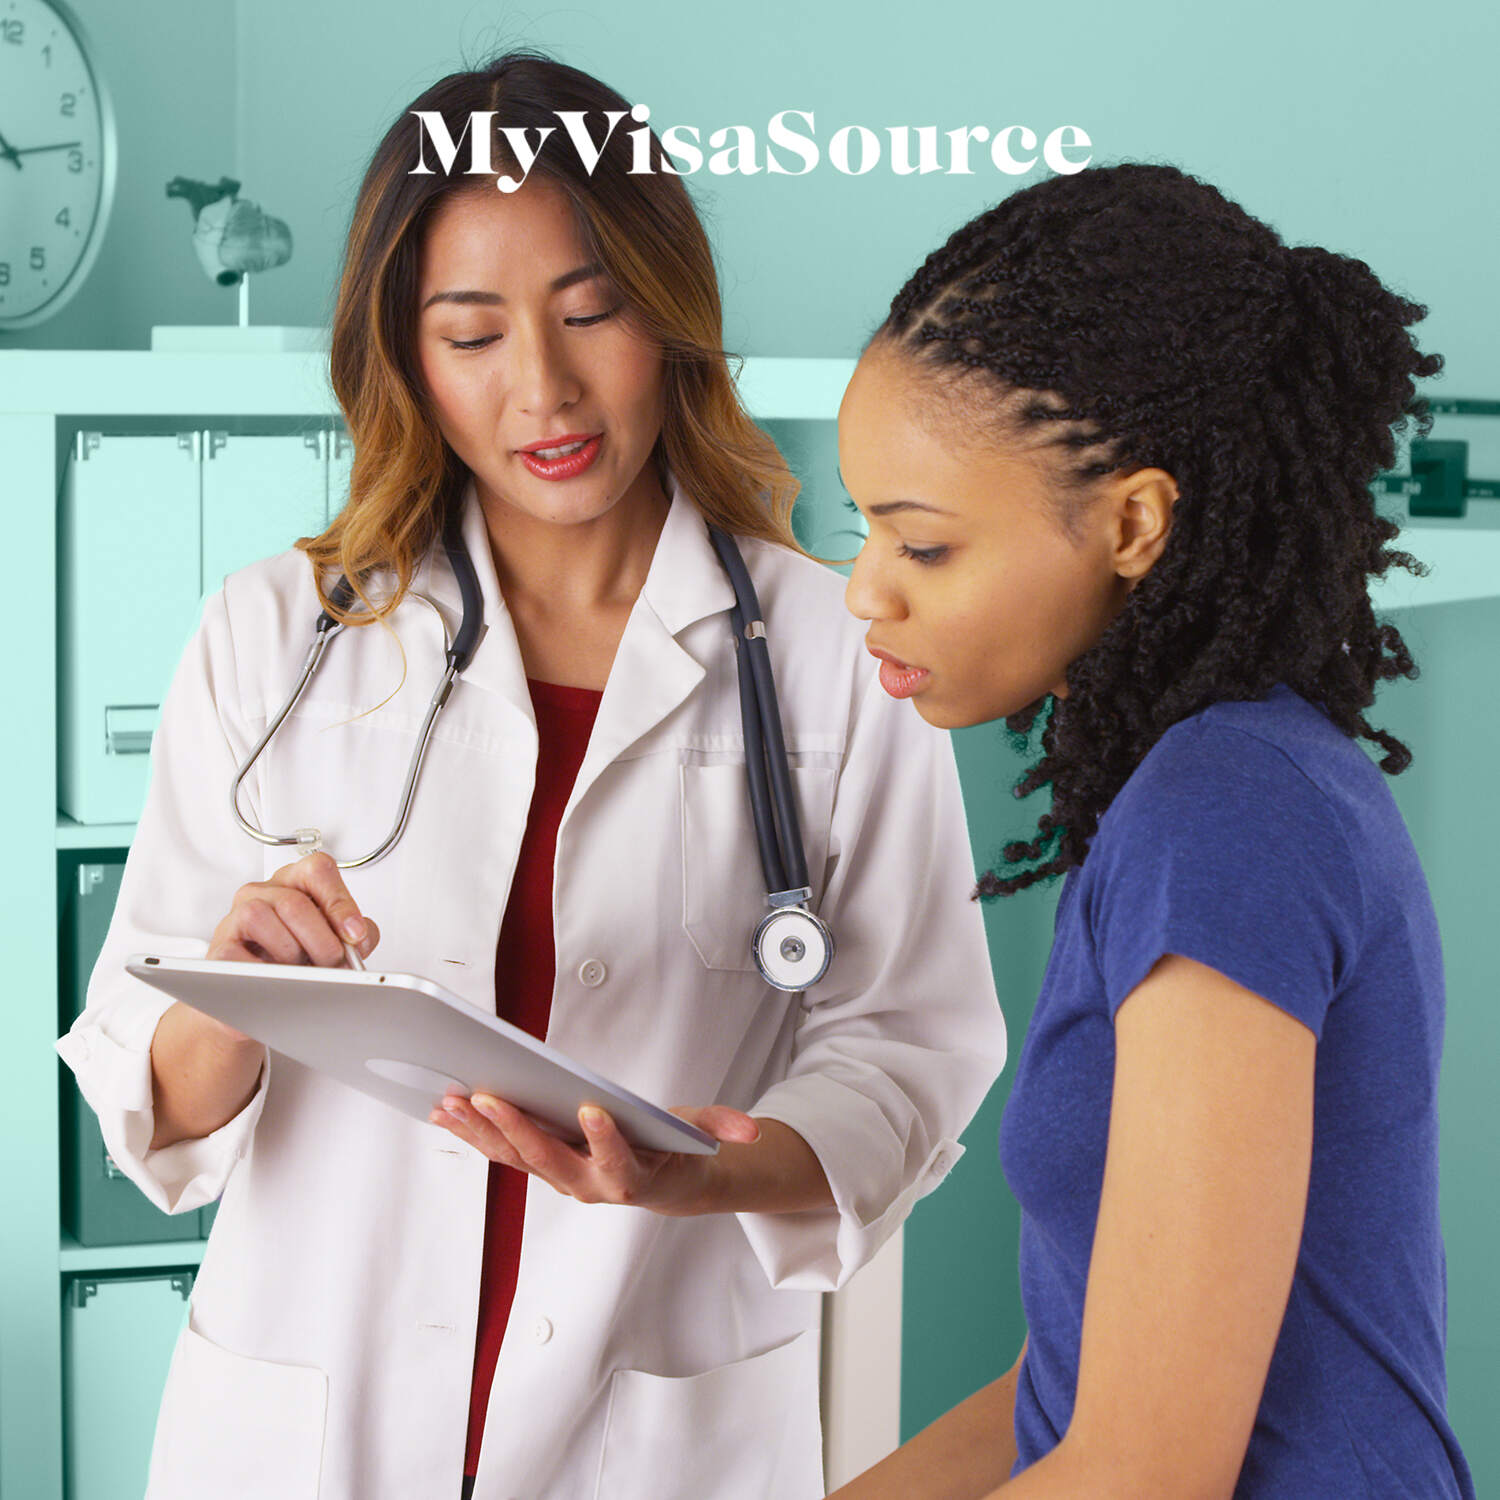 female doctor speaking with female patient my visa source